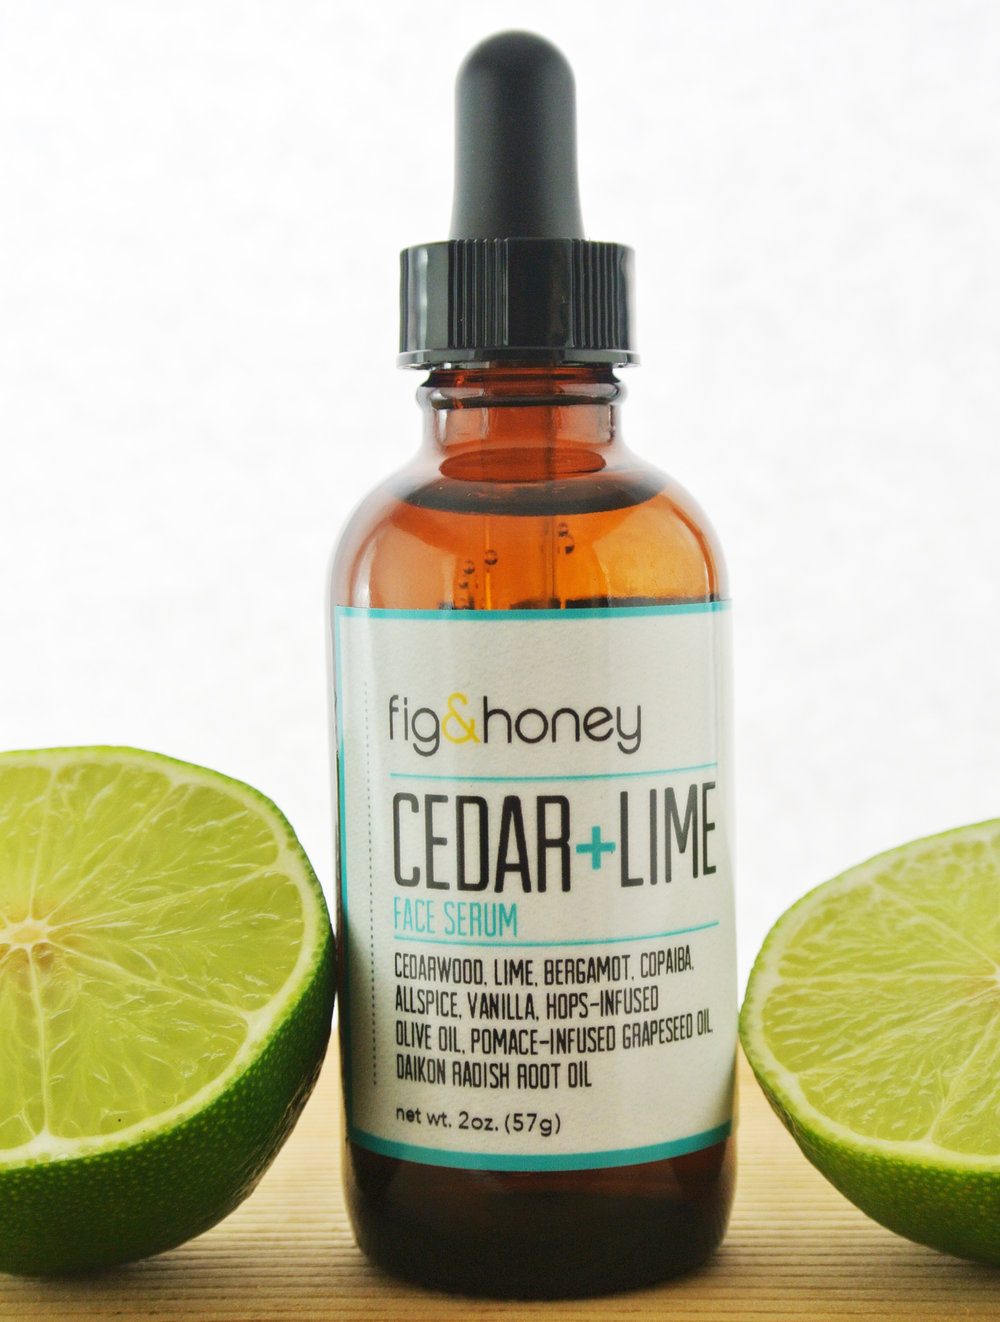 CEDAR + LIME Oil Limes Wood 70-20(2).jpg